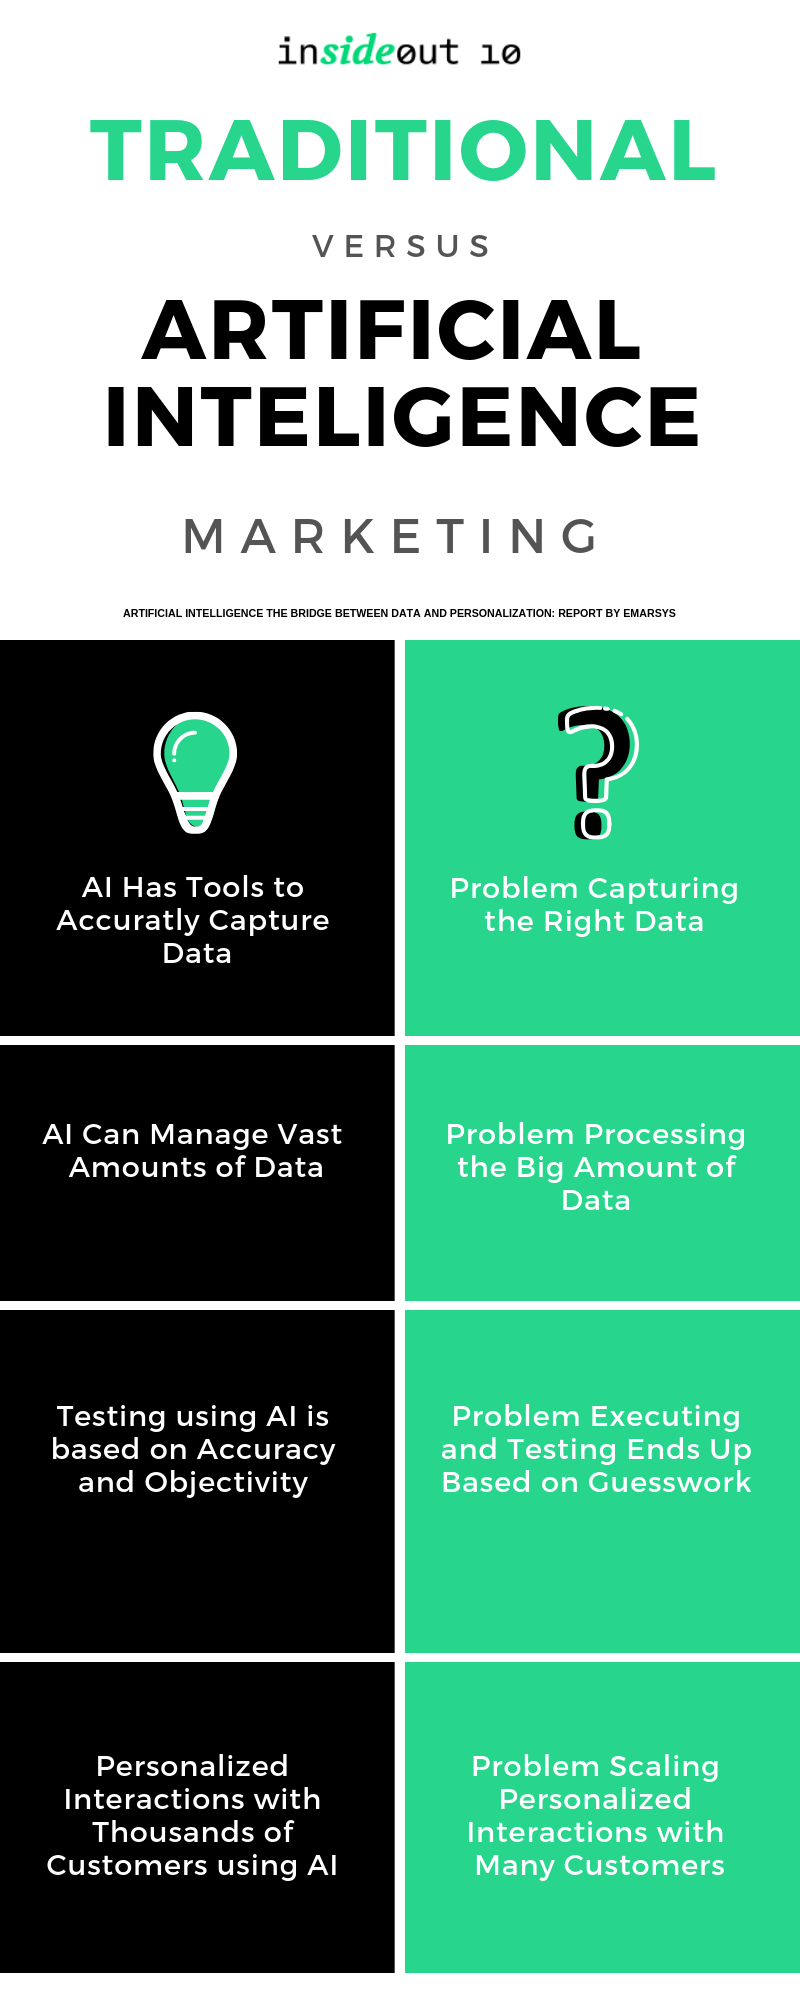 Infographic about the problems faced while using traditional marketing and how AI can solve them